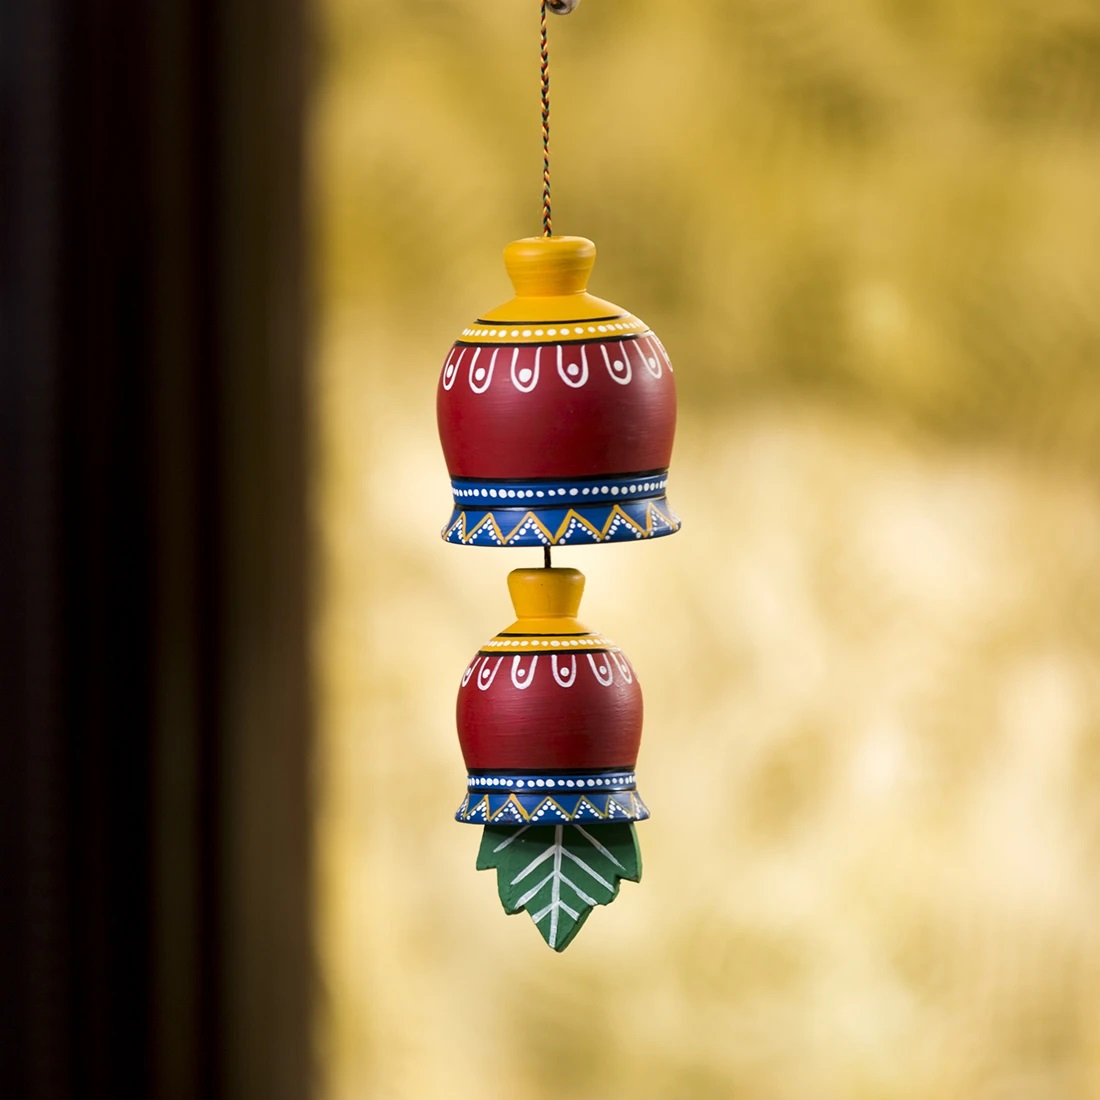 Moorni The Earth Charm Hand-Painted Decorative Hanging In Terracotta & Wood